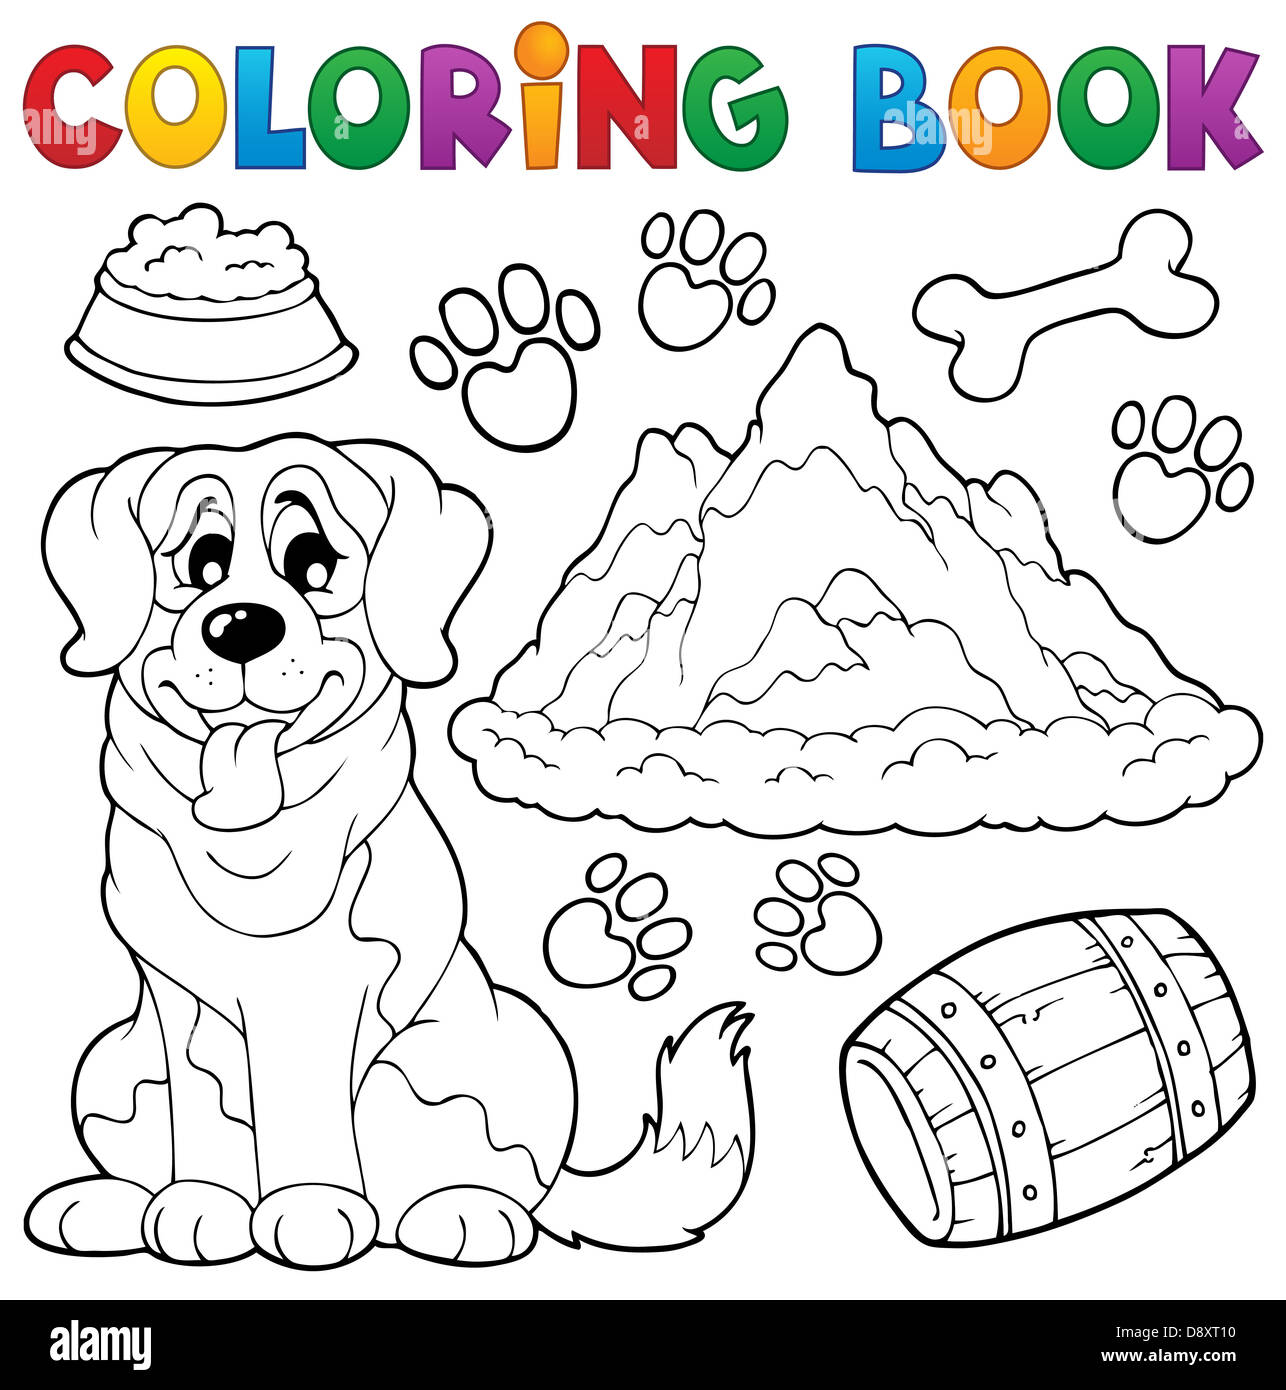 Coloring book dog theme 7 - picture illustration Stock Photo ...